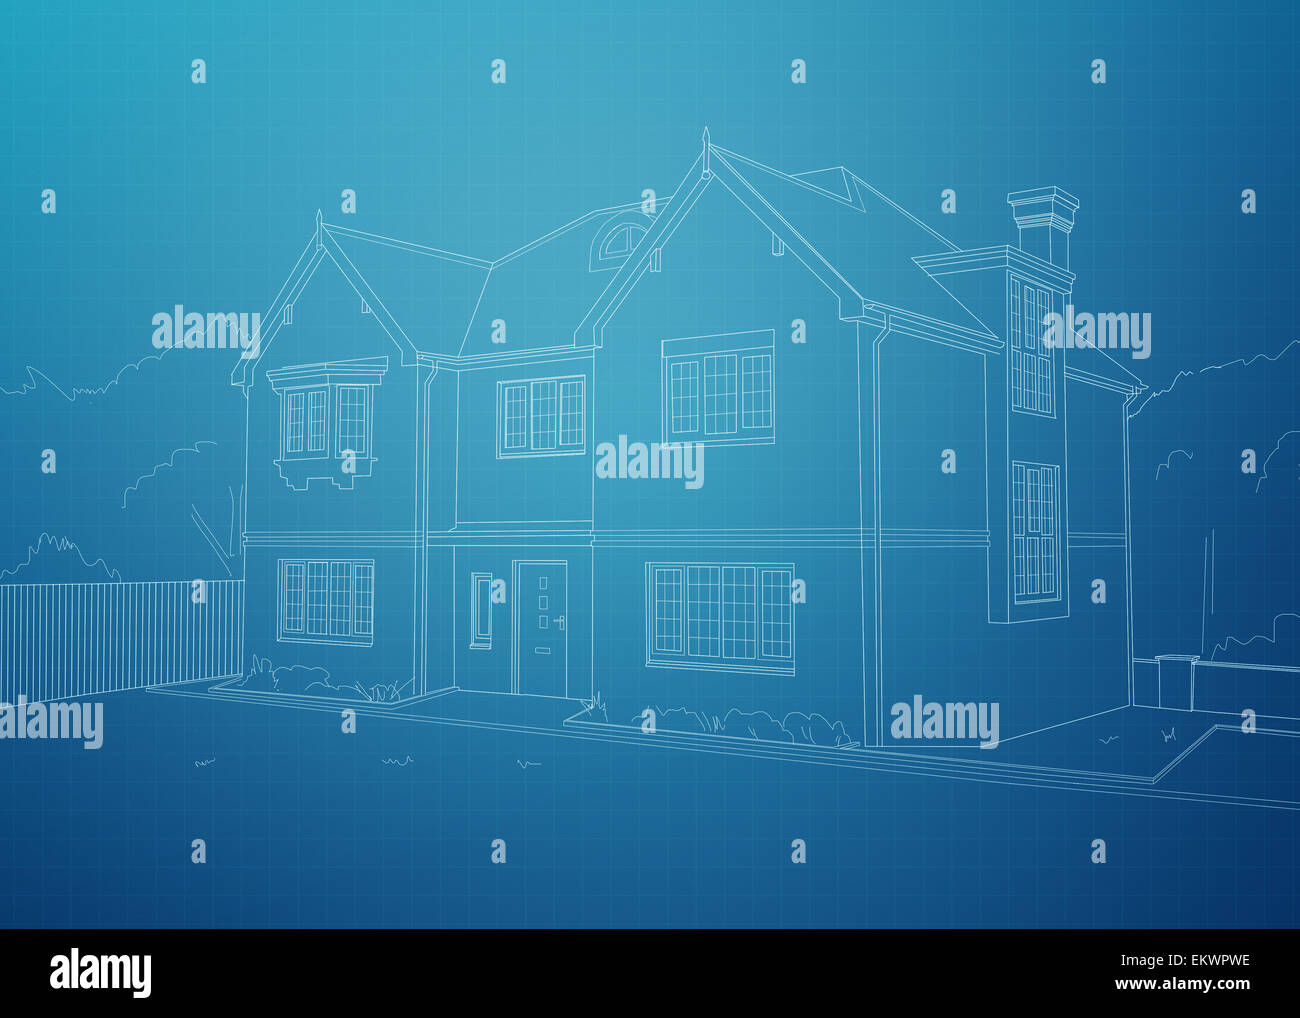 Modern House Blueprint. White Outline Of Home On A Blue Background Grid.    Stock